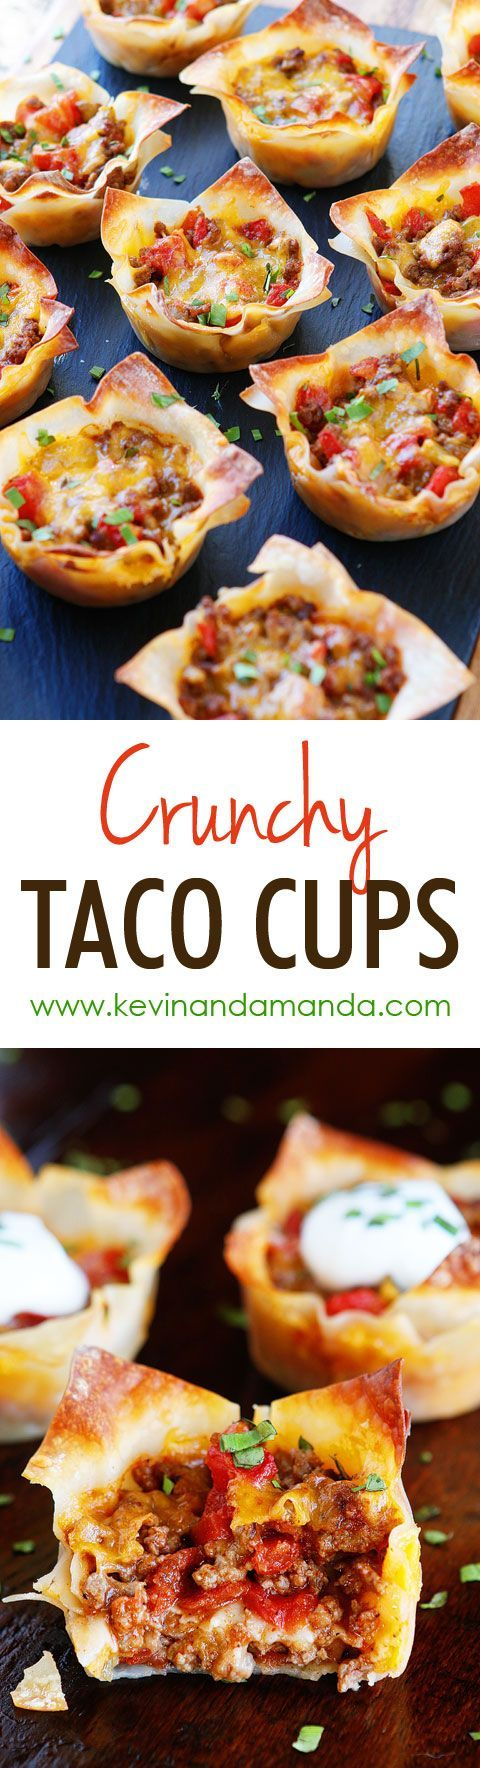 These fun Crunchy Taco Cups are made in a muffin tin with wonton wrappers!  Great for a taco party/bar. Everyone can add their own ingredients and toppings! Crunchy, delicious, and fun to eat!! via Kevin & Amanda